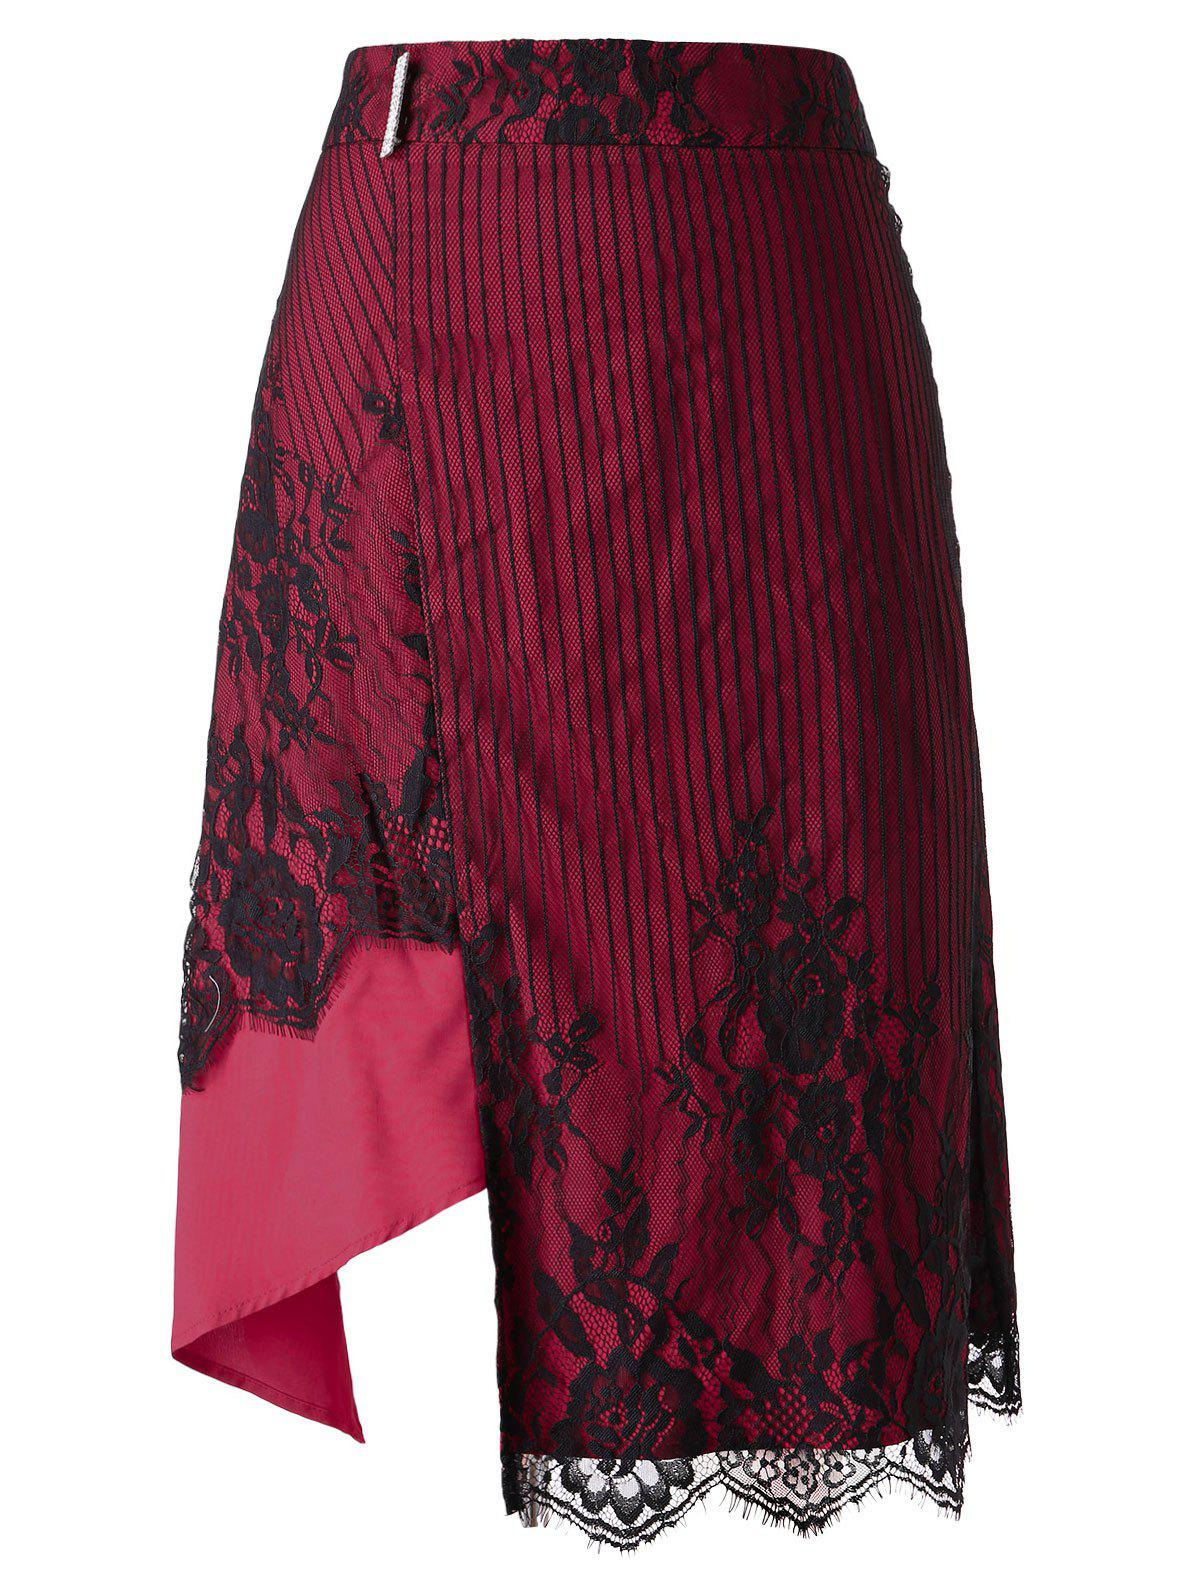 Plus Size Lace Overlay Midi Asymmetrical Skirt - ROSE RED L